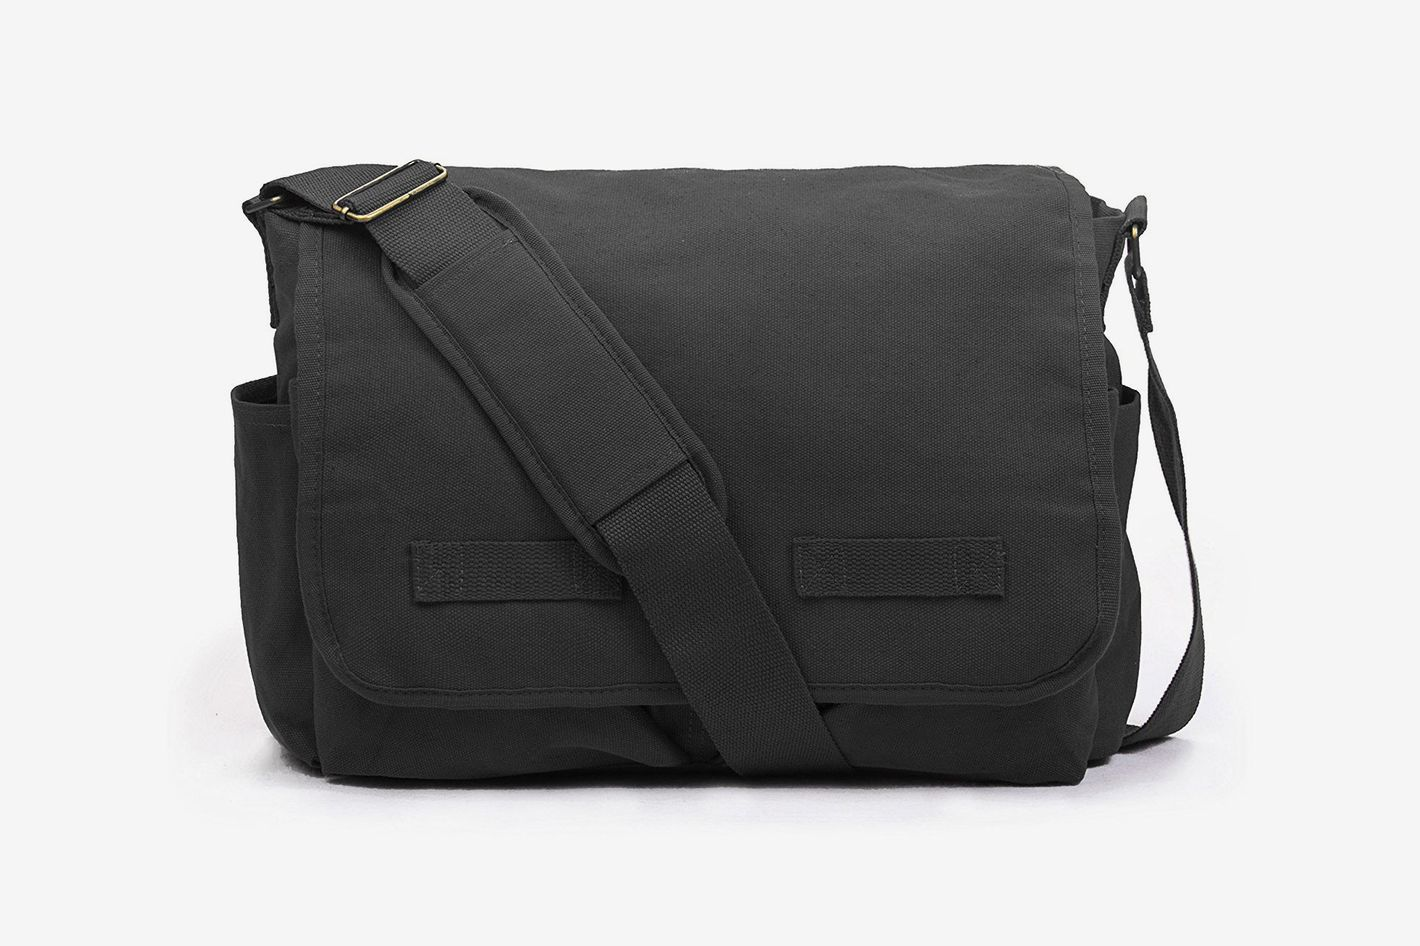 1a603ba8caf 11 Best Messenger Bags for Men 2018